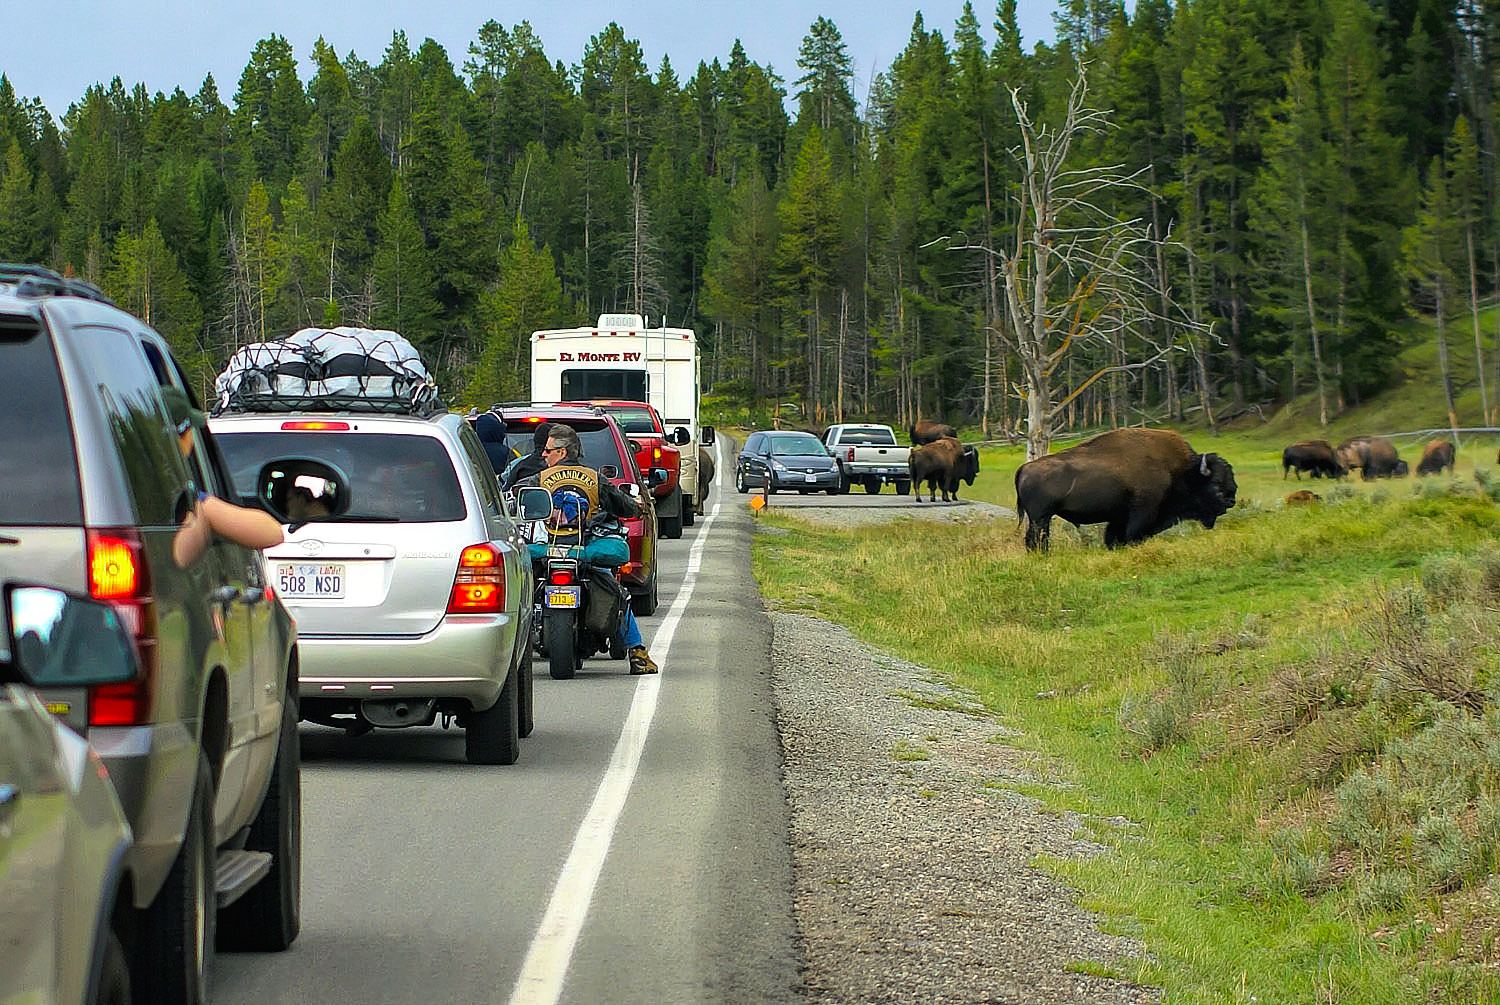 Bison on the road at Yellowstone National Park.